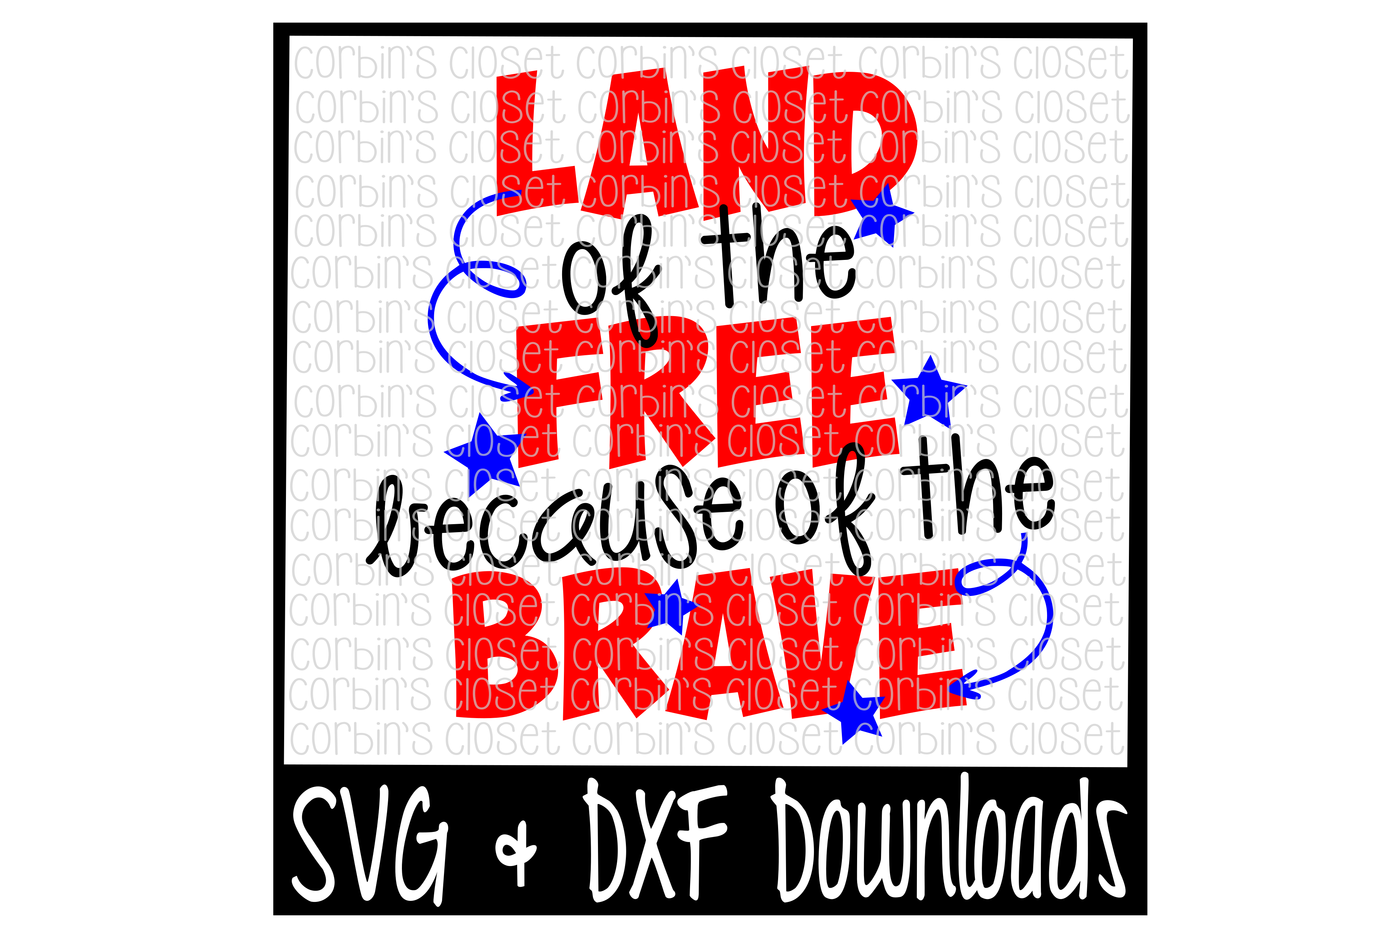 July 4th Land Of The Free Because Of The Brave 4th Of July Cut File By Corbins Svg Thehungryjpeg Com